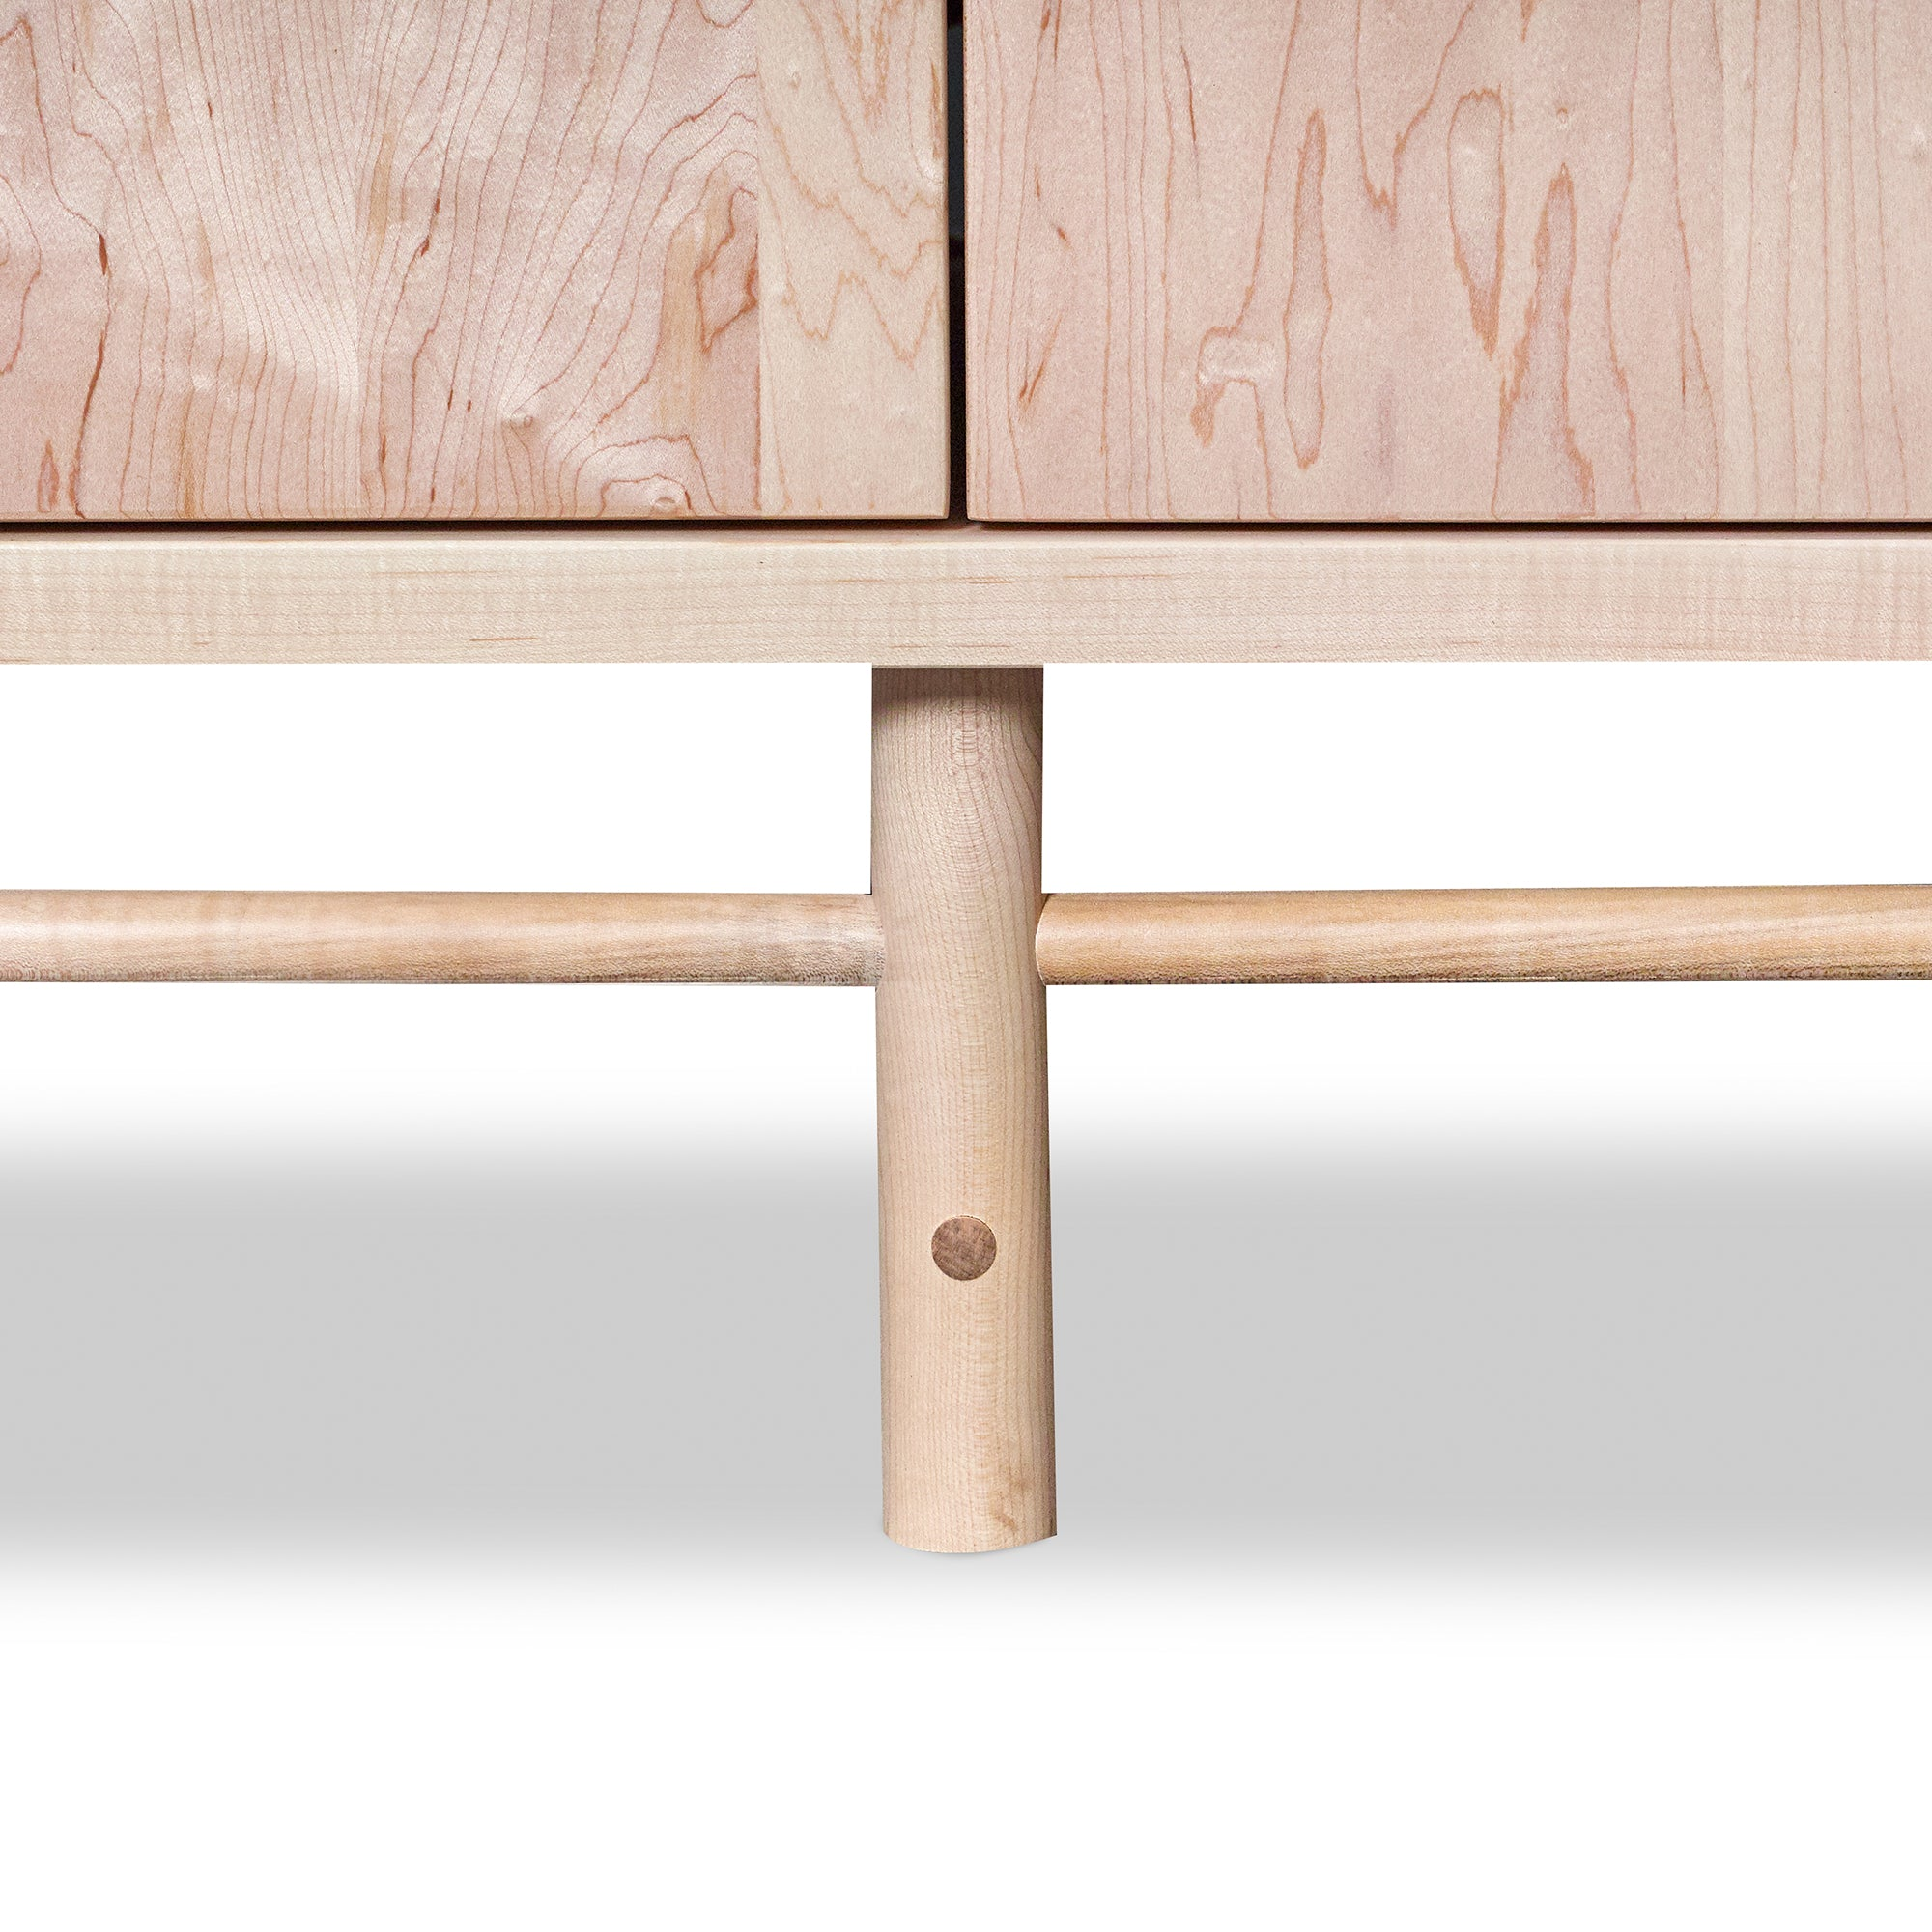 Detail of legs, stretchers and mortise and tenon joinery om solid maple wood Navarend Media Case